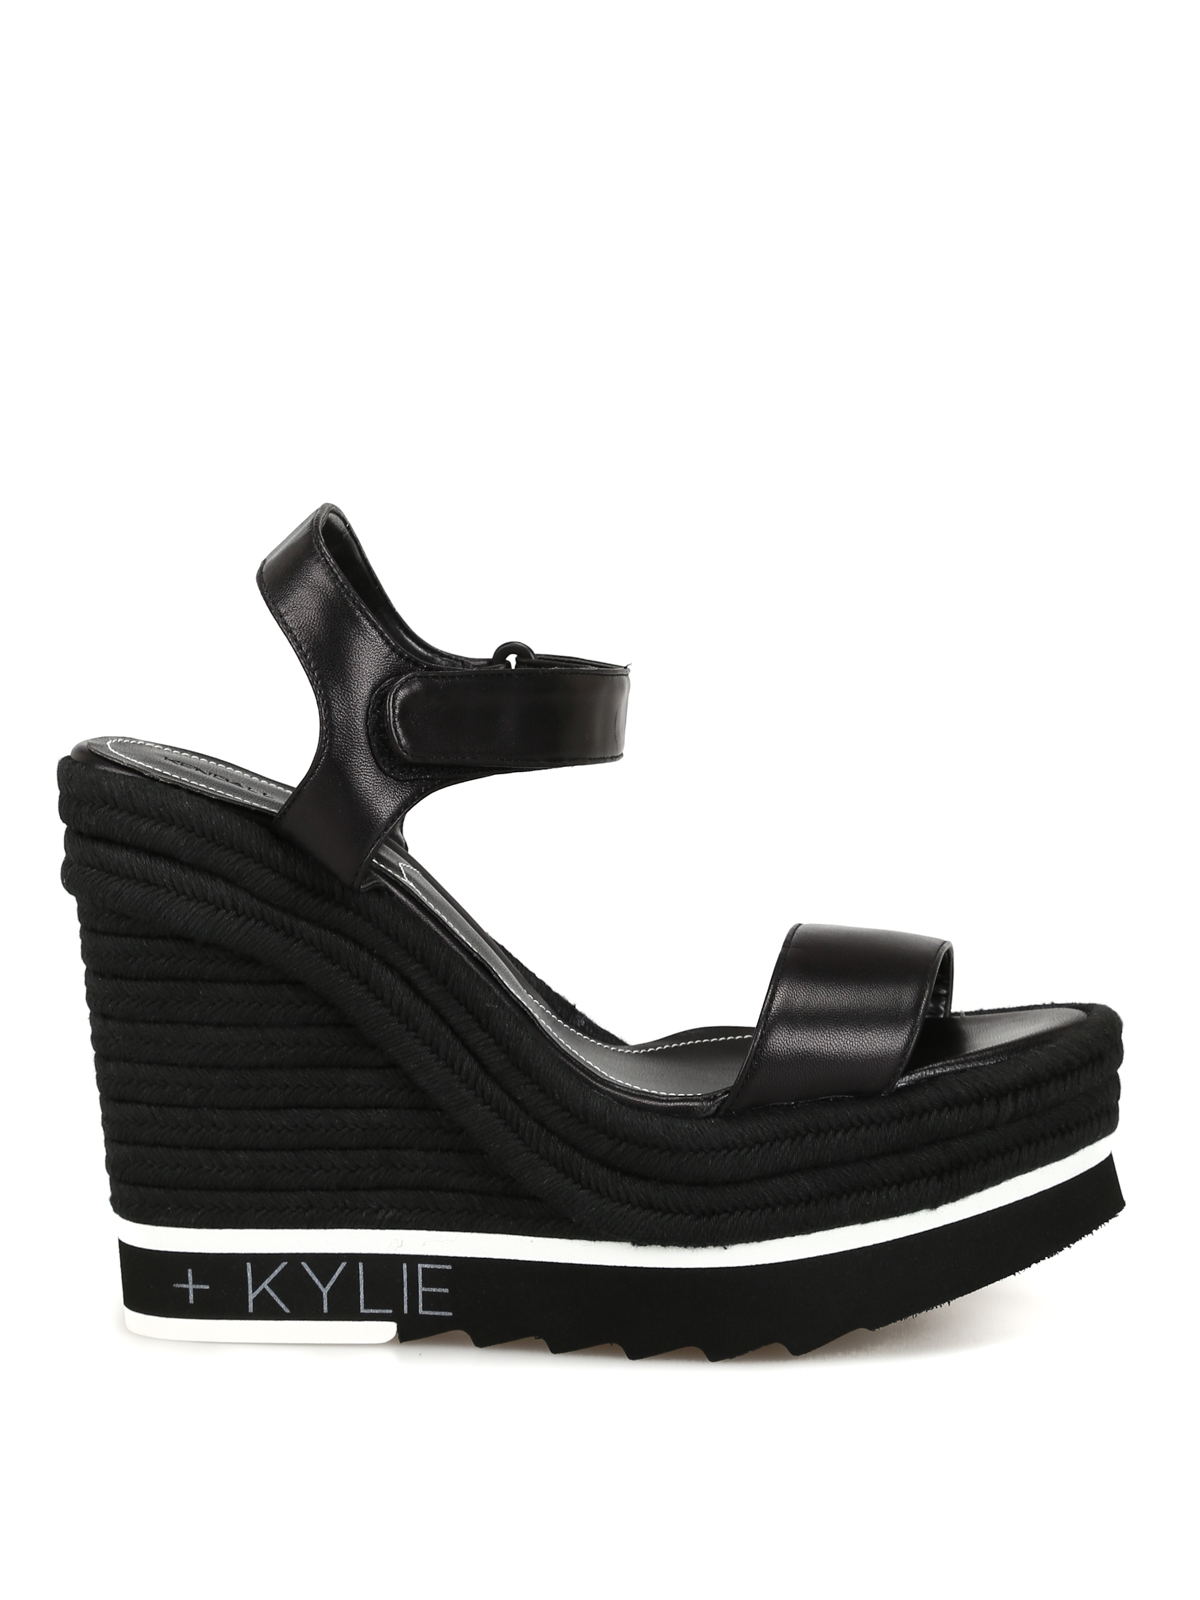 c9f2bc8cdc8 Kendall + Kylie - Glamor black leather wedge sandals - sandals ...